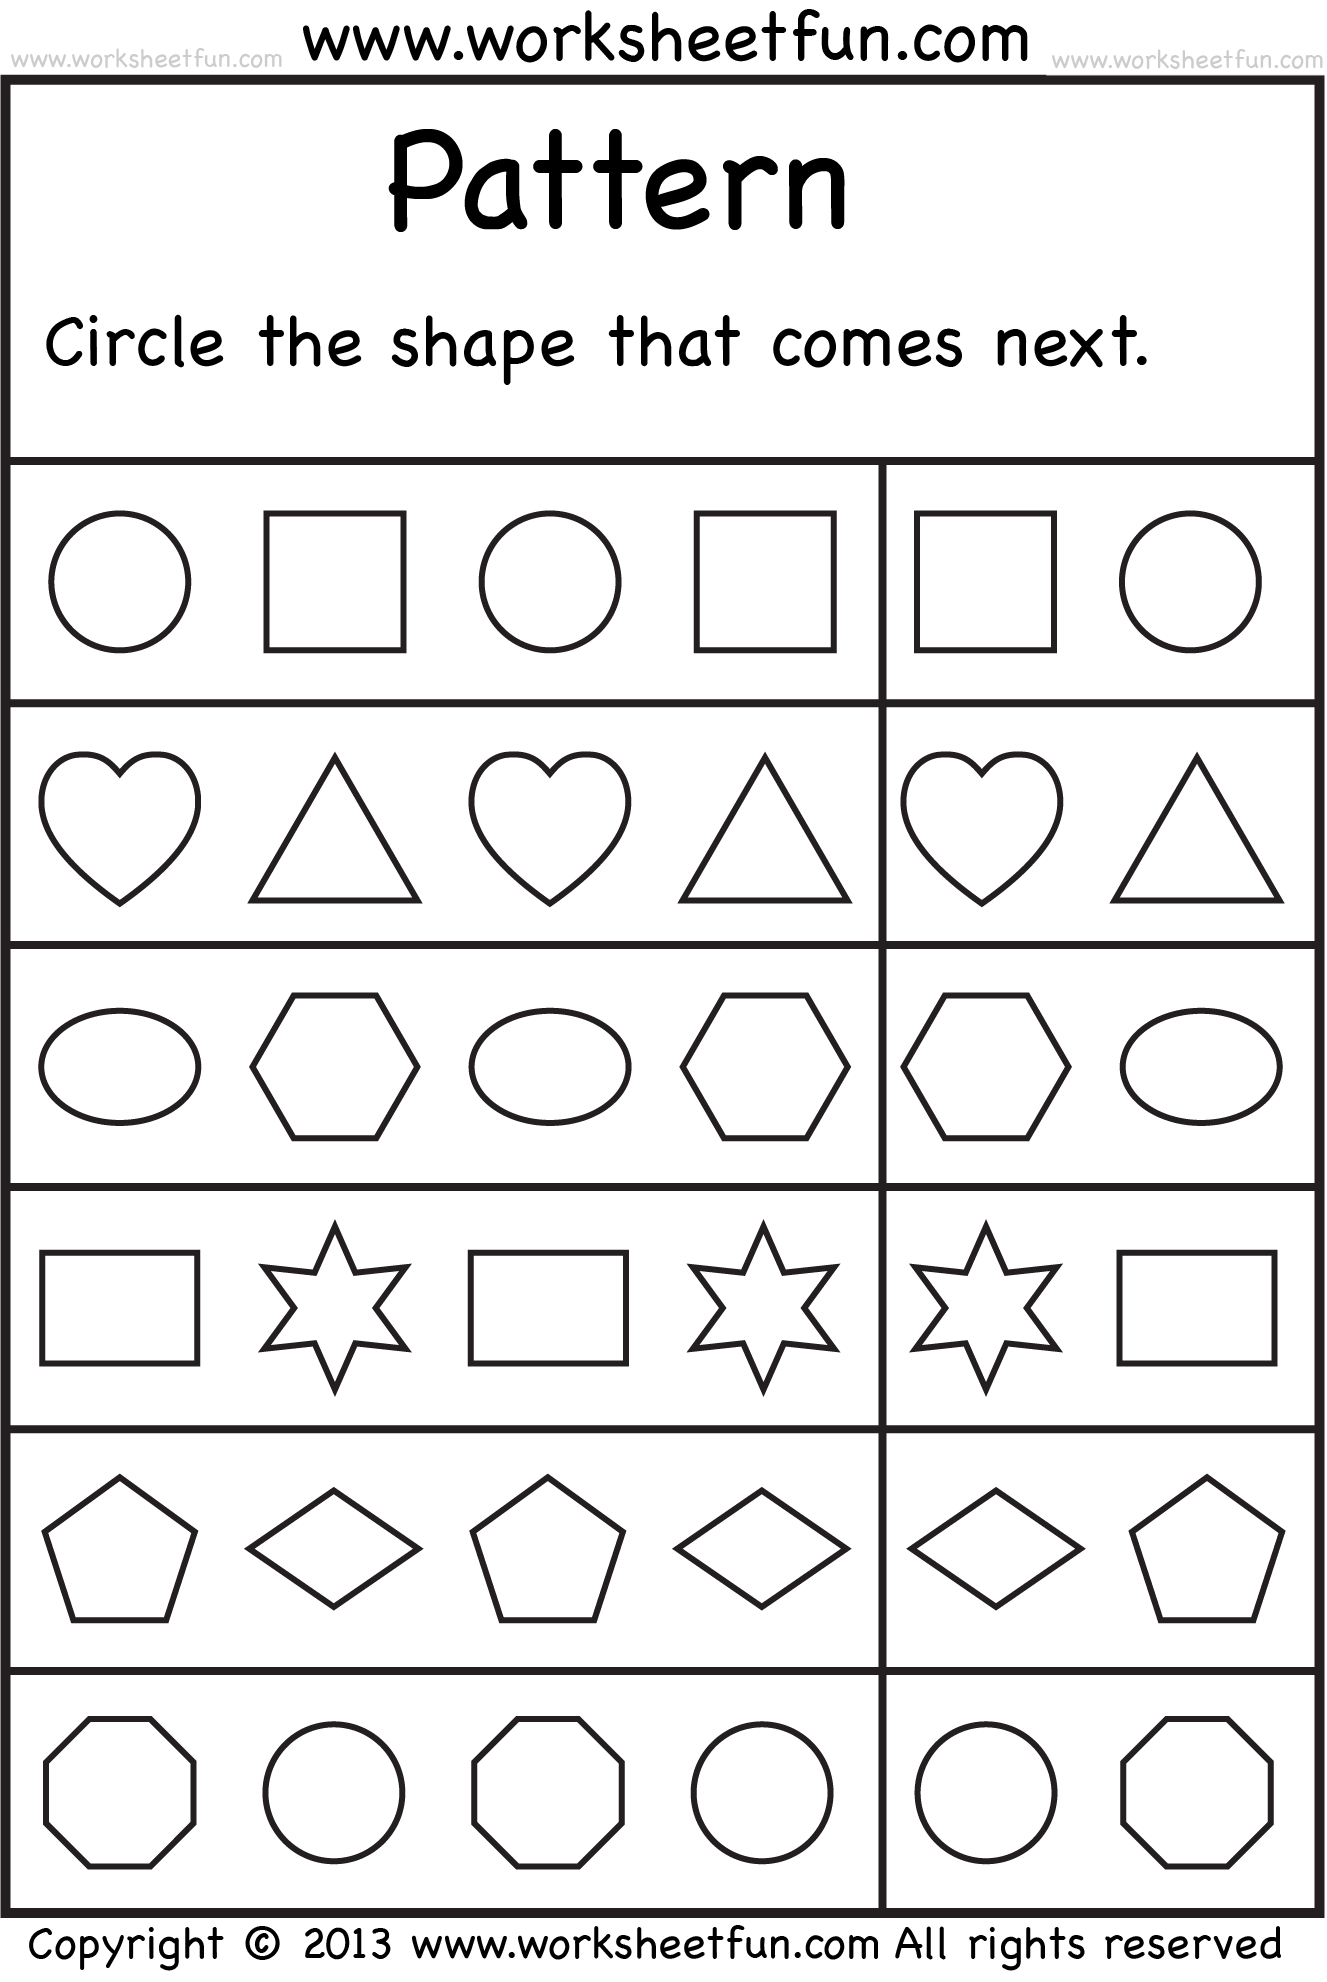 Weirdmailus  Scenic  Images About School Worksheets On Pinterest  Number Words  With Interesting  Images About School Worksheets On Pinterest  Number Words Alphabet Worksheets And Free Printable Kindergarten Worksheets With Amusing Algebra  Systems Of Equations Worksheet Also Color Shapes Worksheet In Addition Grade  Social Studies Worksheets And Blank United States Map Worksheet As Well As Number Line Worksheets Pdf Additionally And Then What Happened Paul Revere Worksheets From Pinterestcom With Weirdmailus  Interesting  Images About School Worksheets On Pinterest  Number Words  With Amusing  Images About School Worksheets On Pinterest  Number Words Alphabet Worksheets And Free Printable Kindergarten Worksheets And Scenic Algebra  Systems Of Equations Worksheet Also Color Shapes Worksheet In Addition Grade  Social Studies Worksheets From Pinterestcom